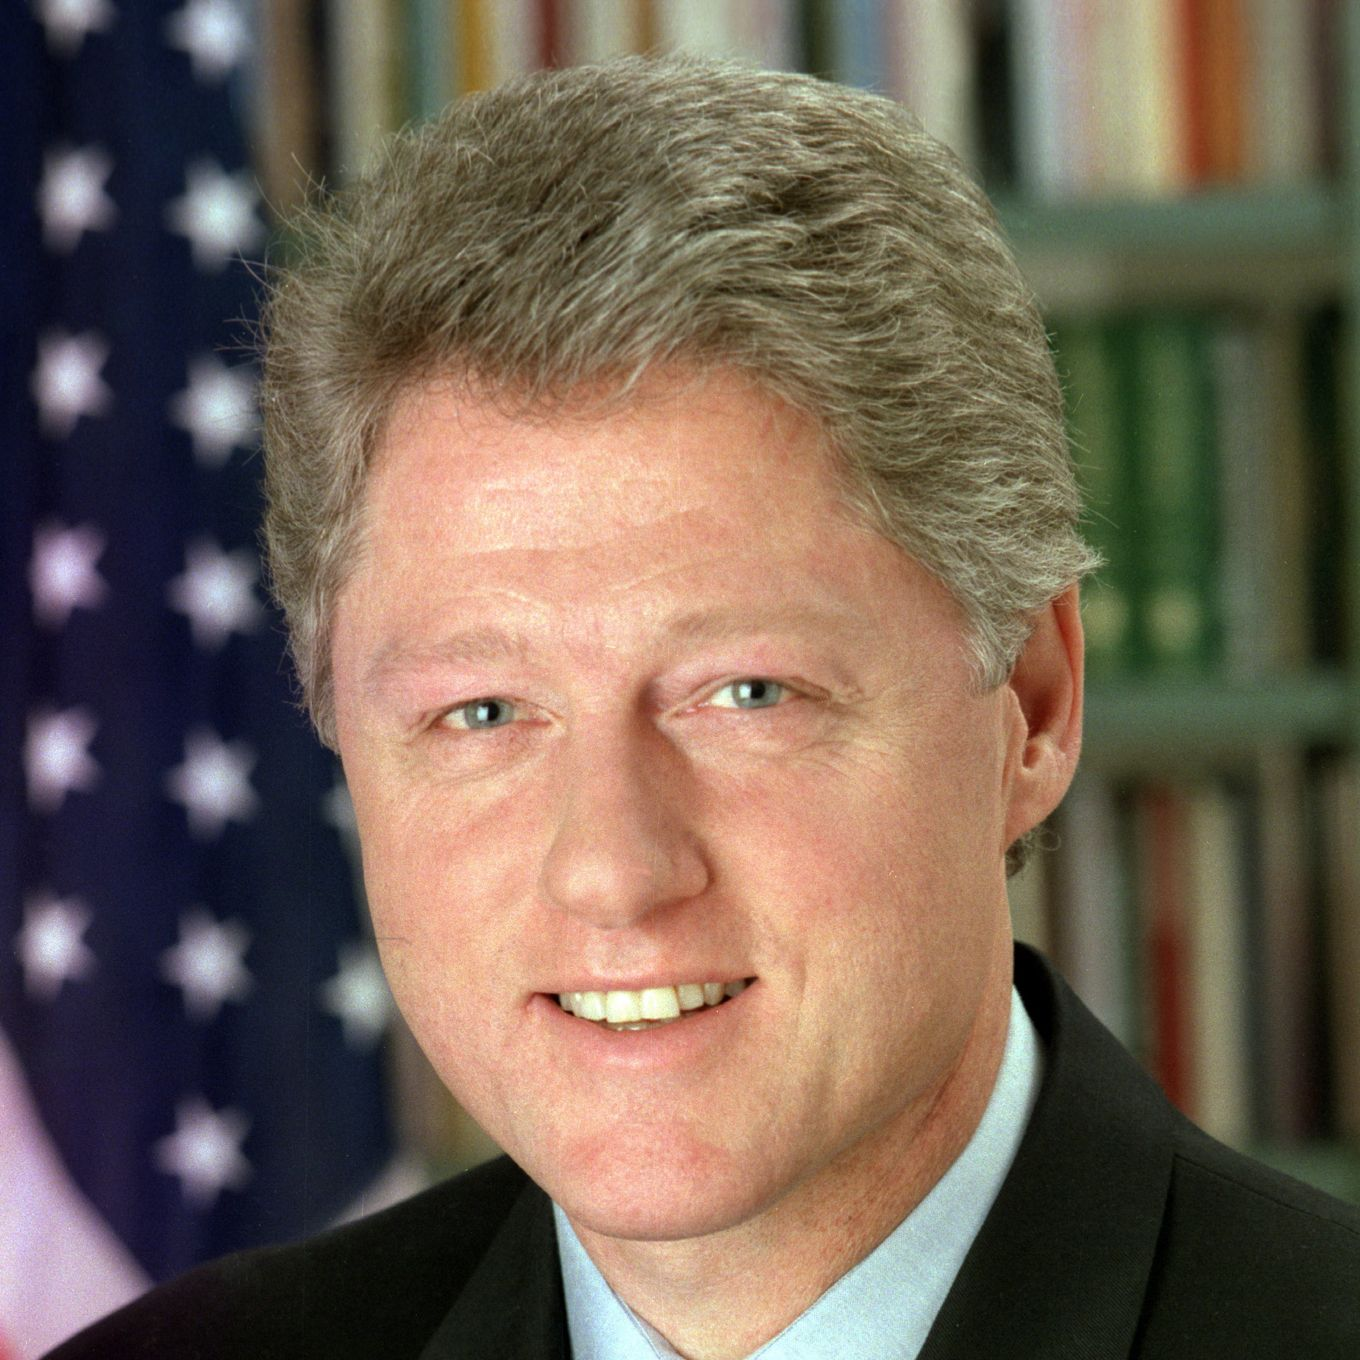 44_Bill_Clinton_3x4.jpg